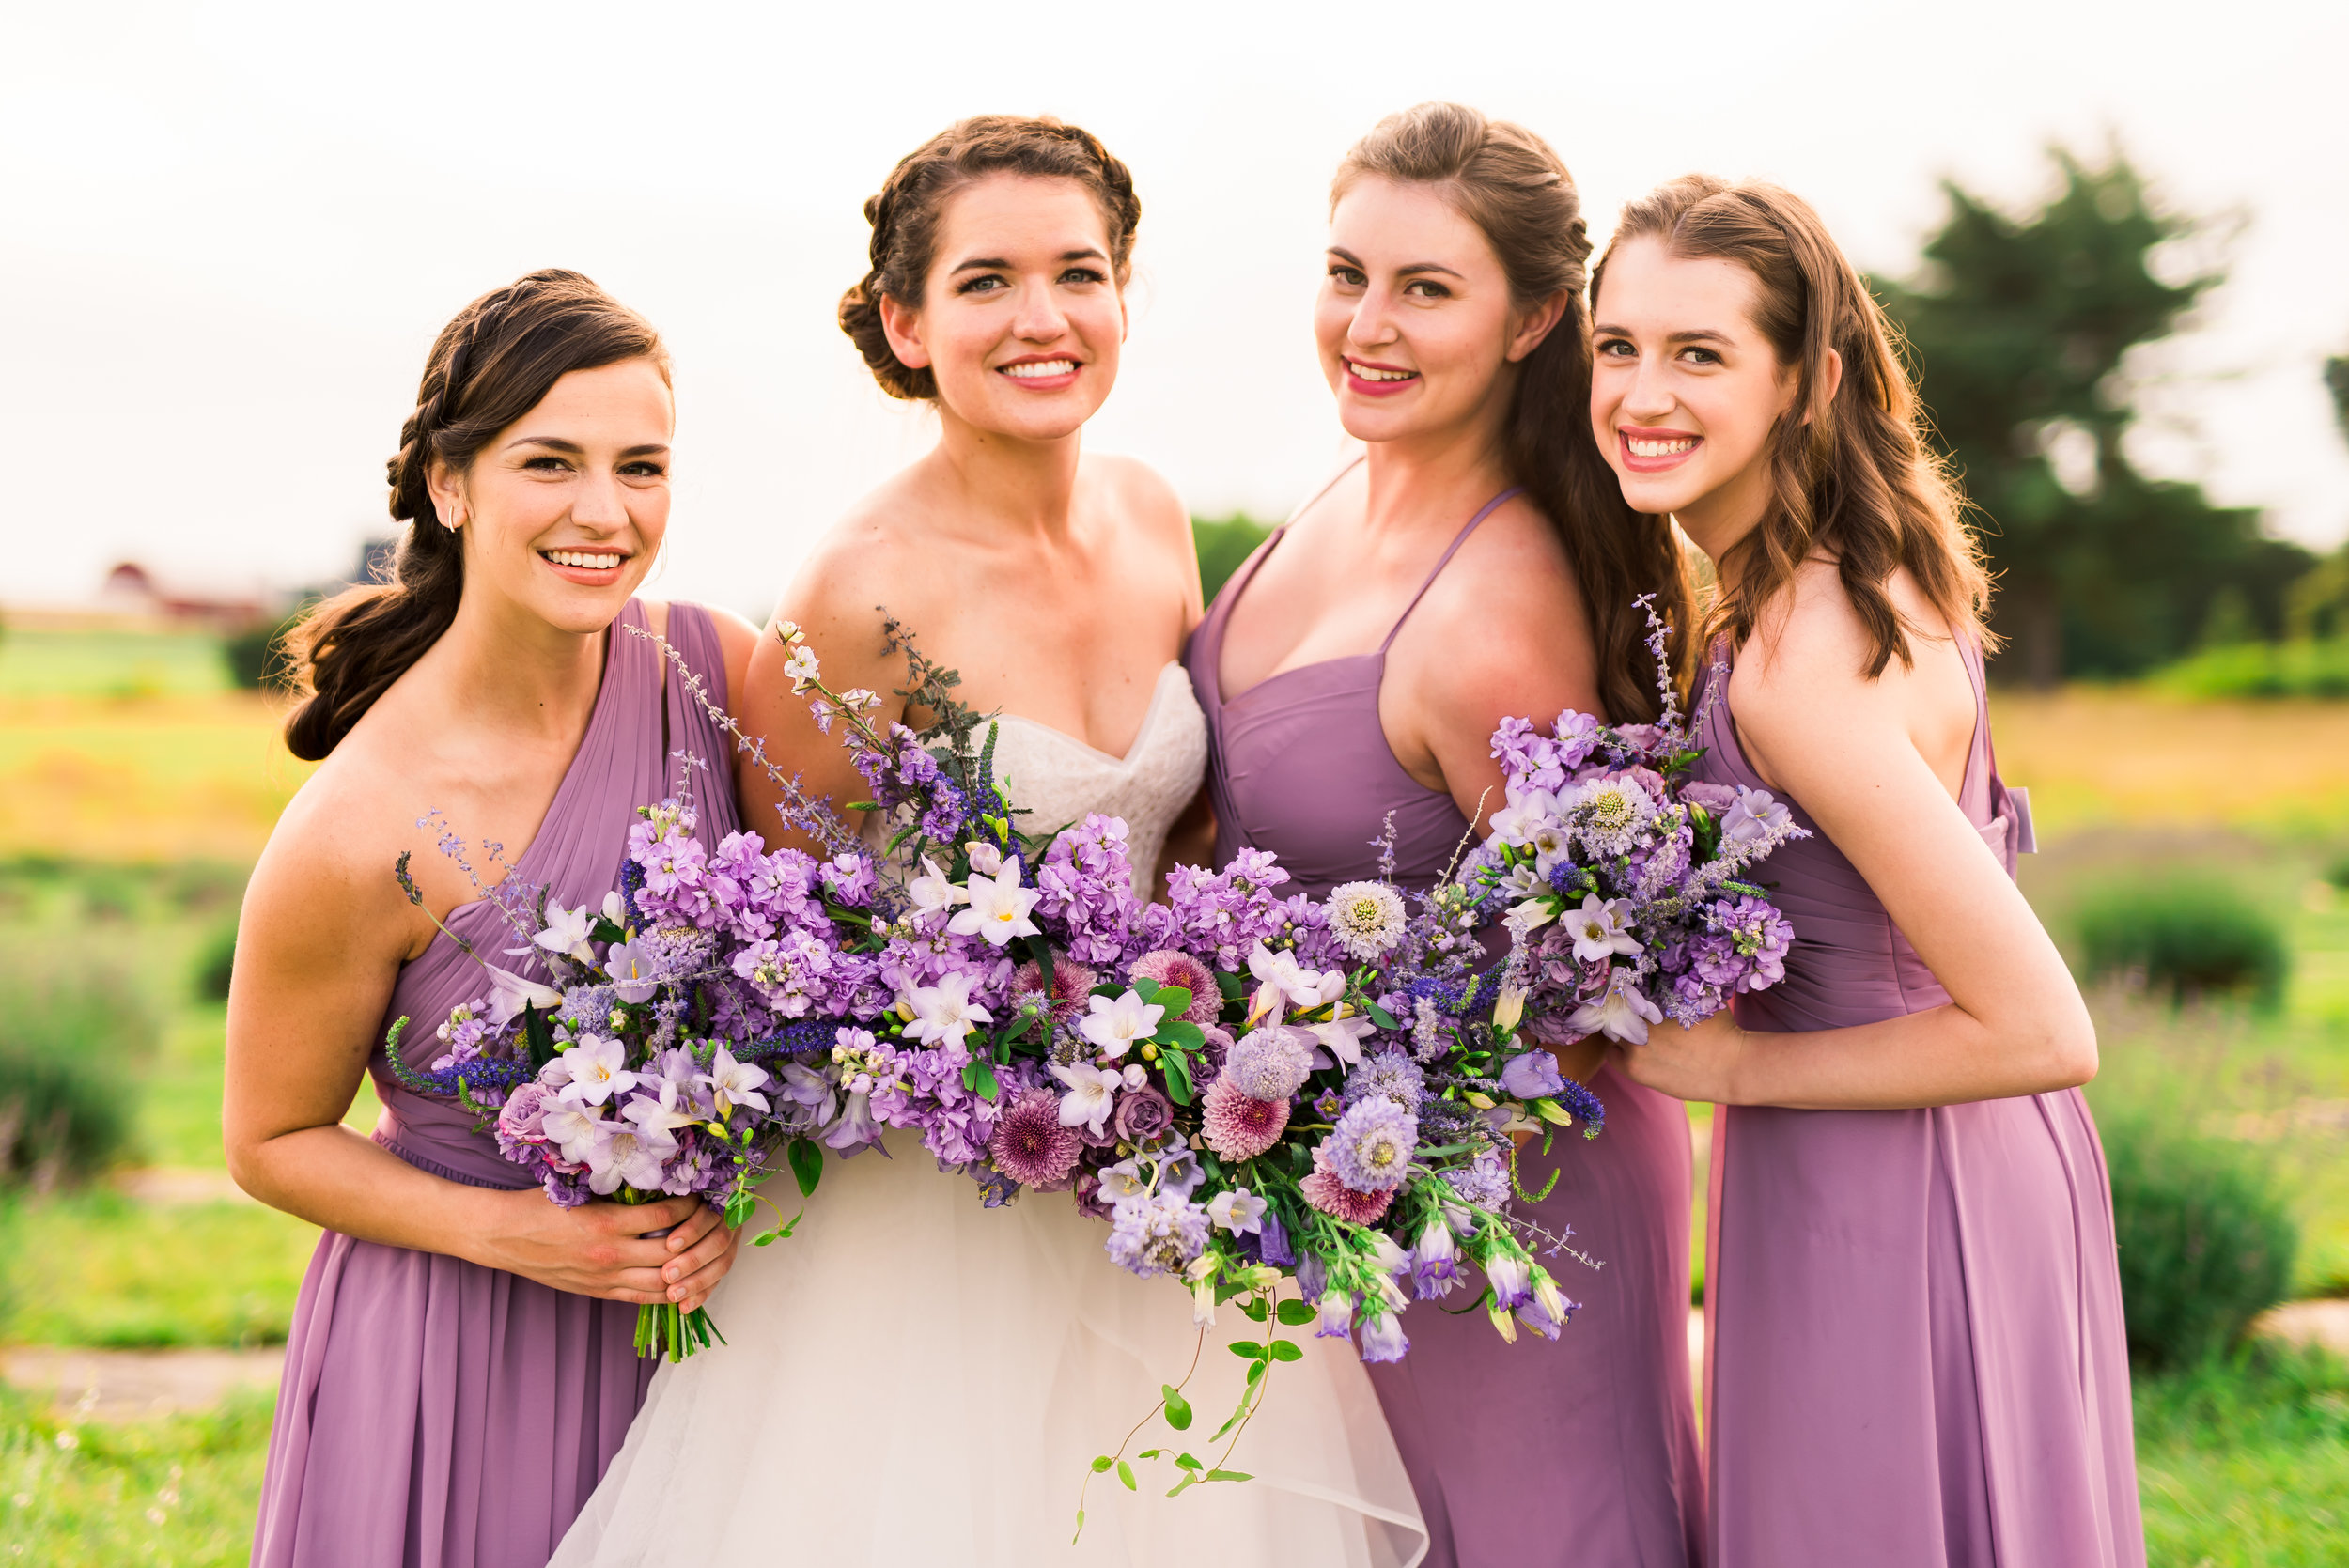 Lavender wedding flowers. Lavender bridesmaid's bouquet. Lavender bridal bouquet by Lark Floral